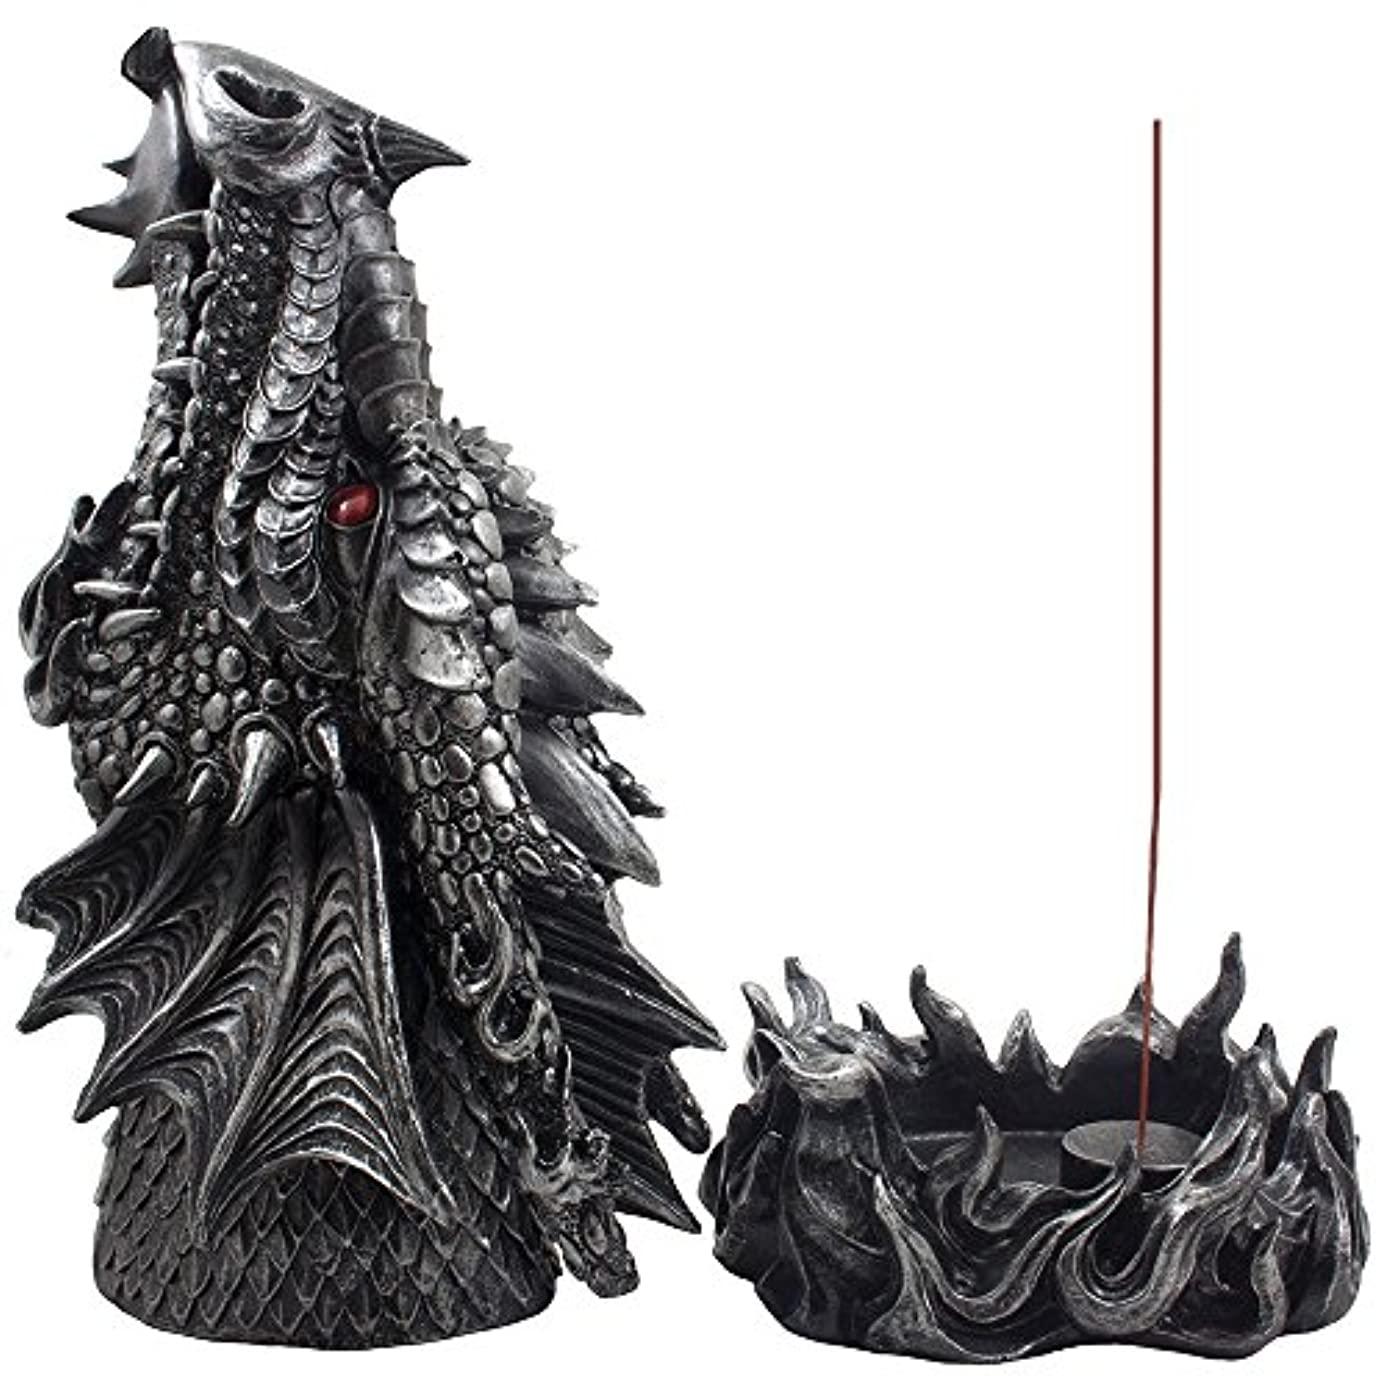 ファイルつぶやきキャップMythical Fire Breathing Dragon Incense Holder & Burner Combo Statue for Sticks or Cones with Decorative Display...